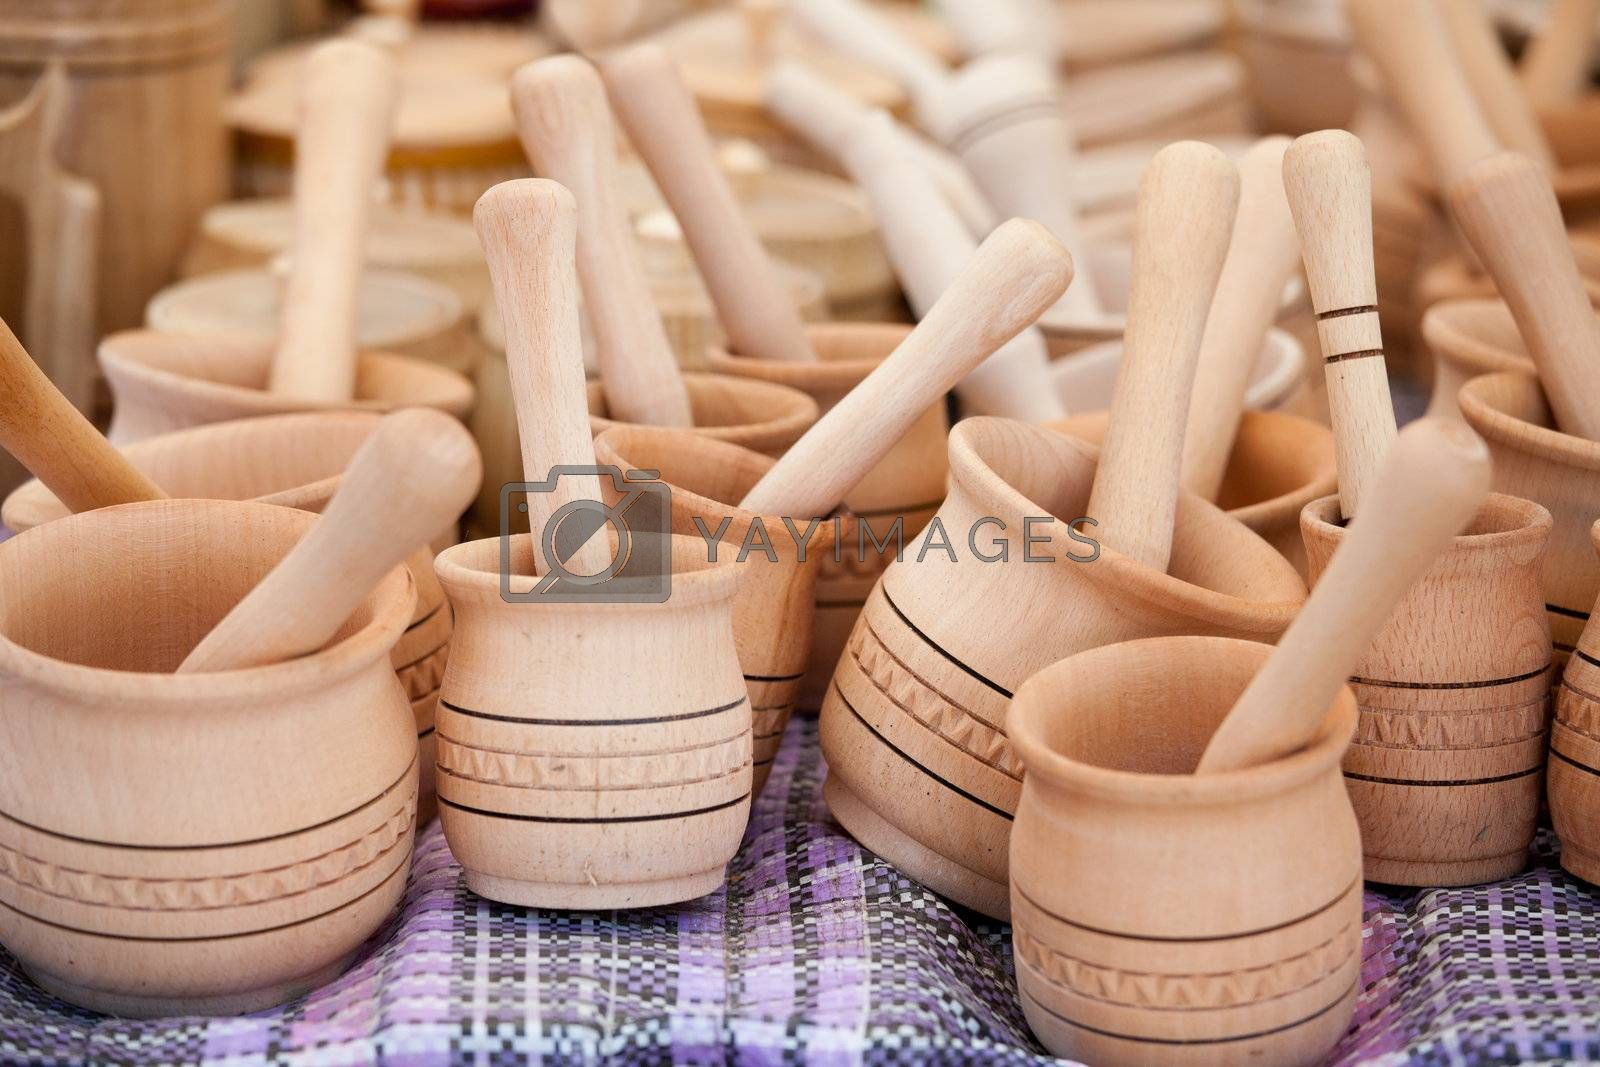 Rustic handmade wooden pounder and pestle on woven towel at street handicraft market